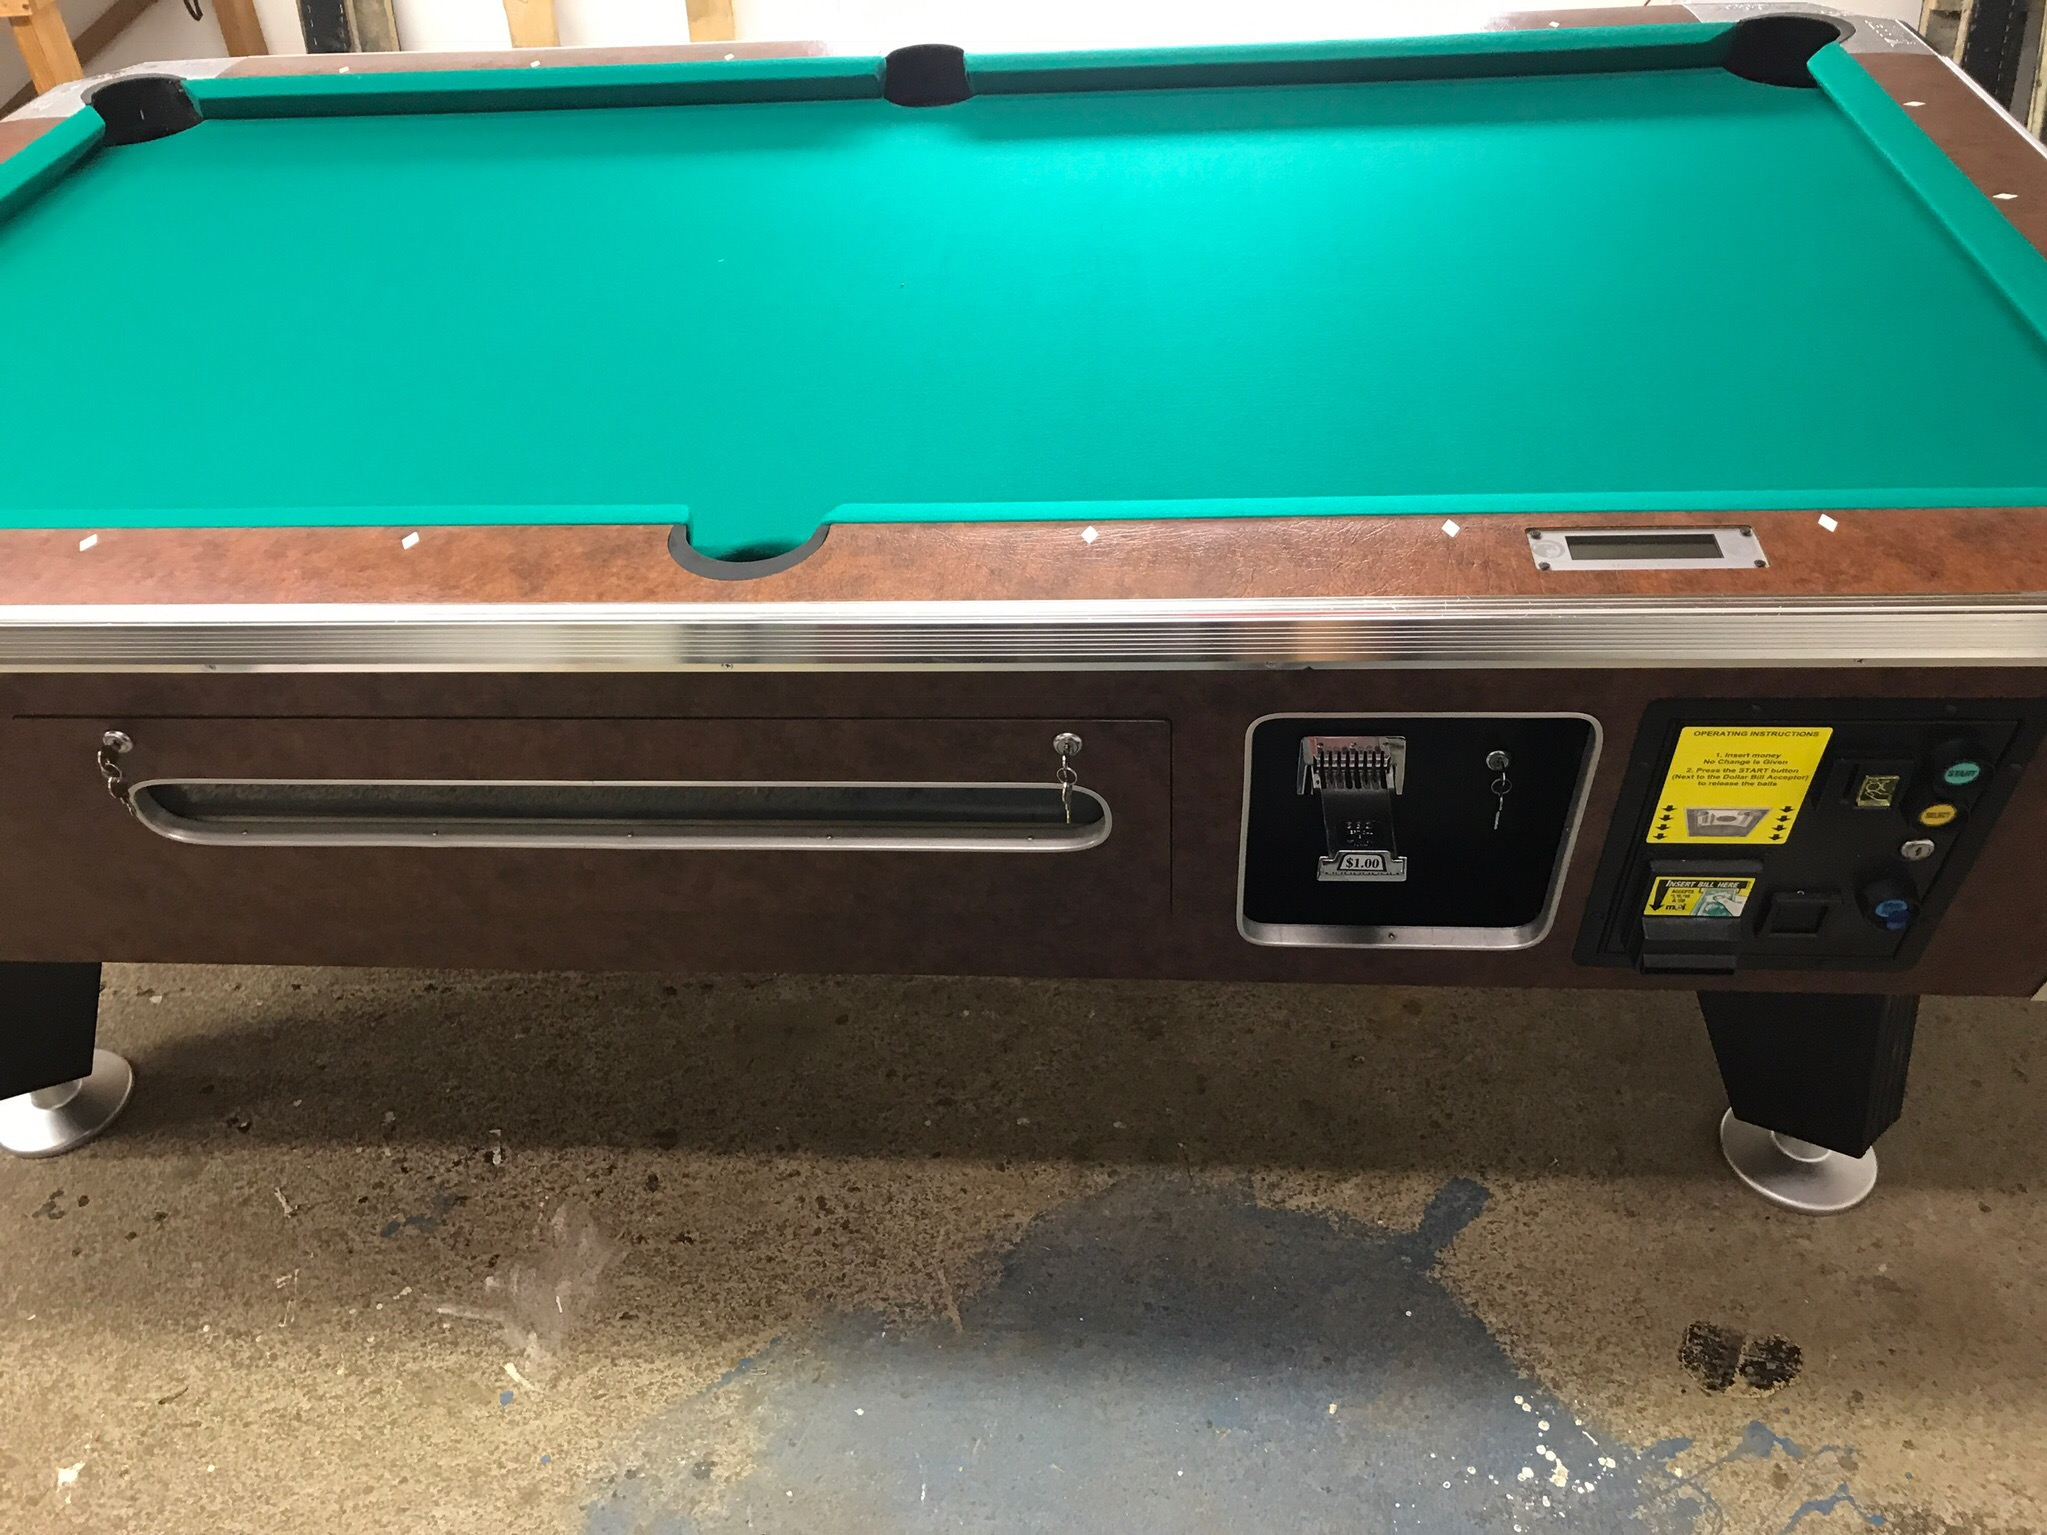 Table 080217 Valley Coin Operated Pool Table Used Coin